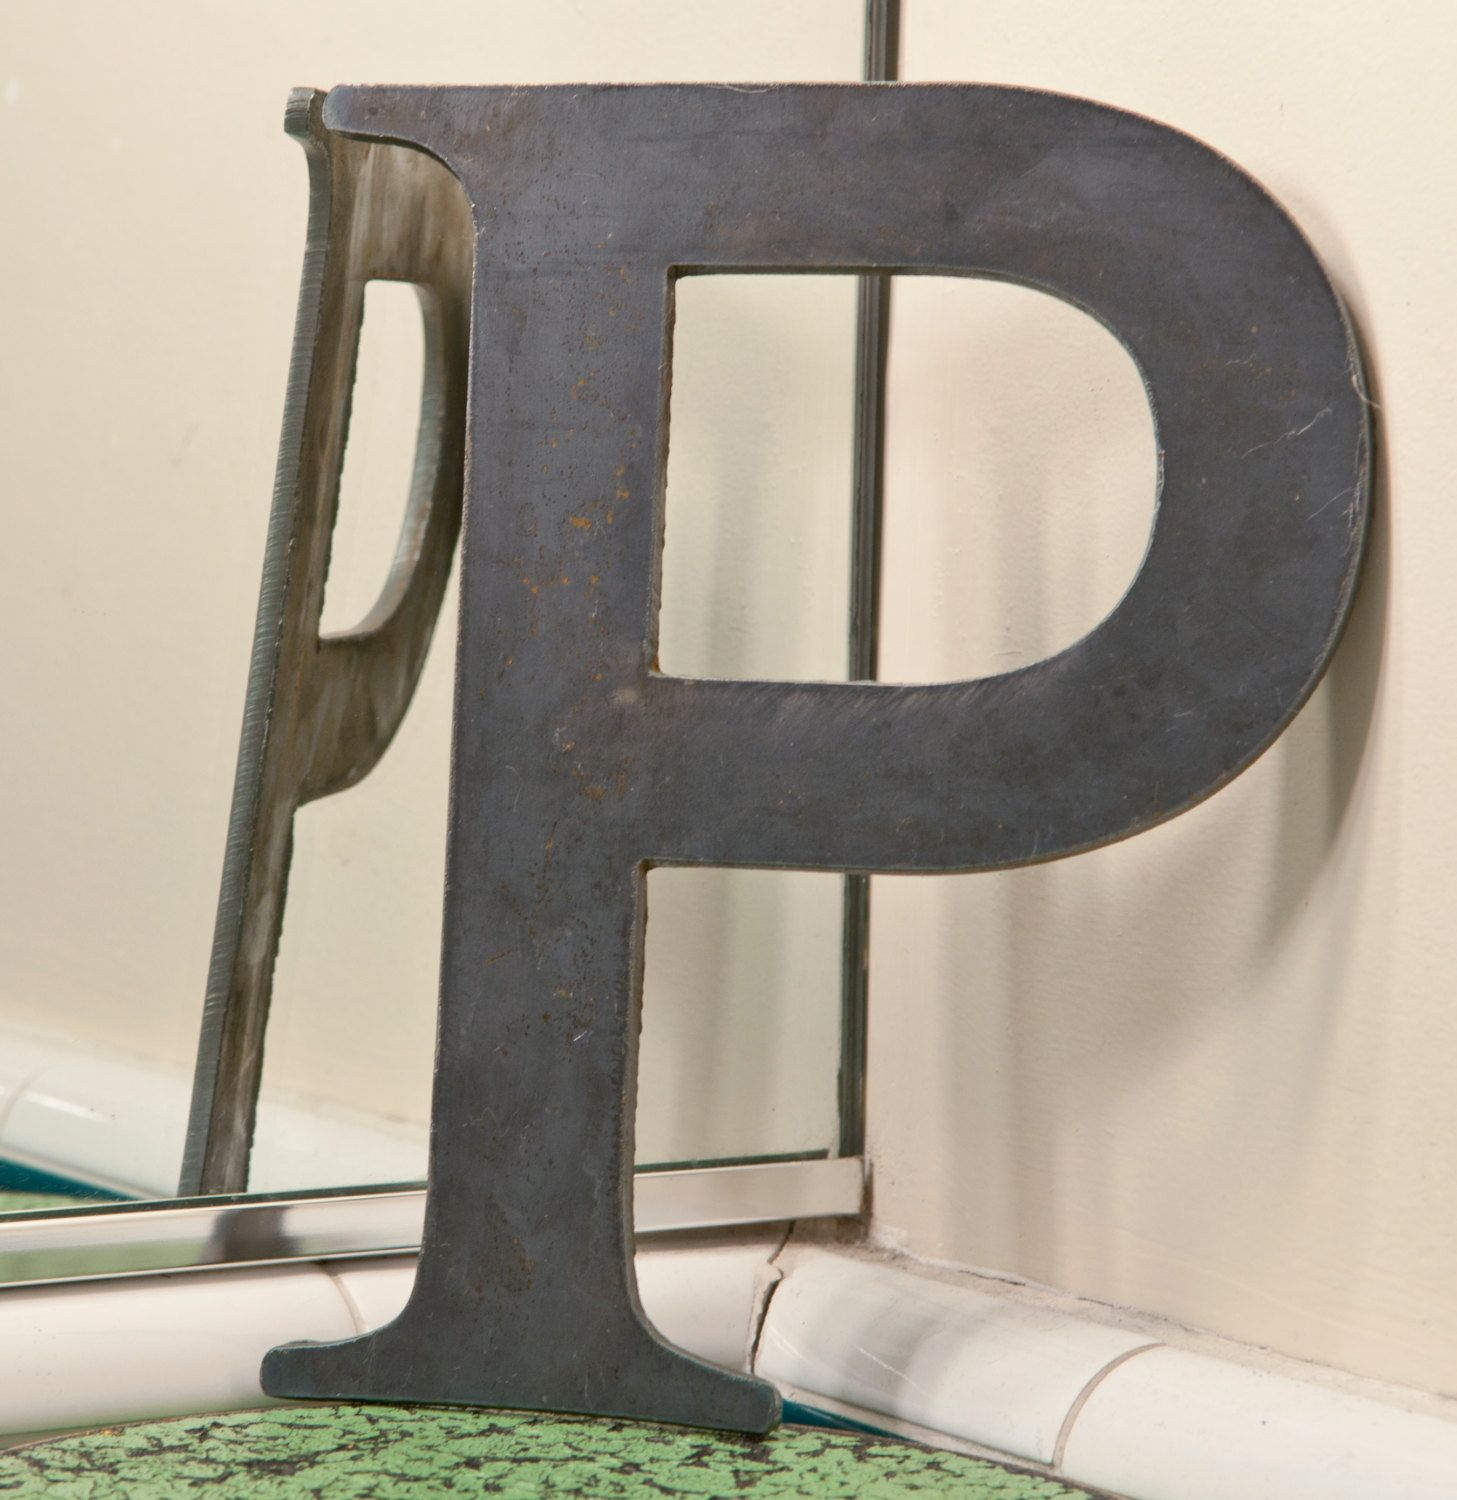 "Modern Metal Letters Metal Letters P Sign 8X6"" Modern Raw Metal Recycled Welded Steel"